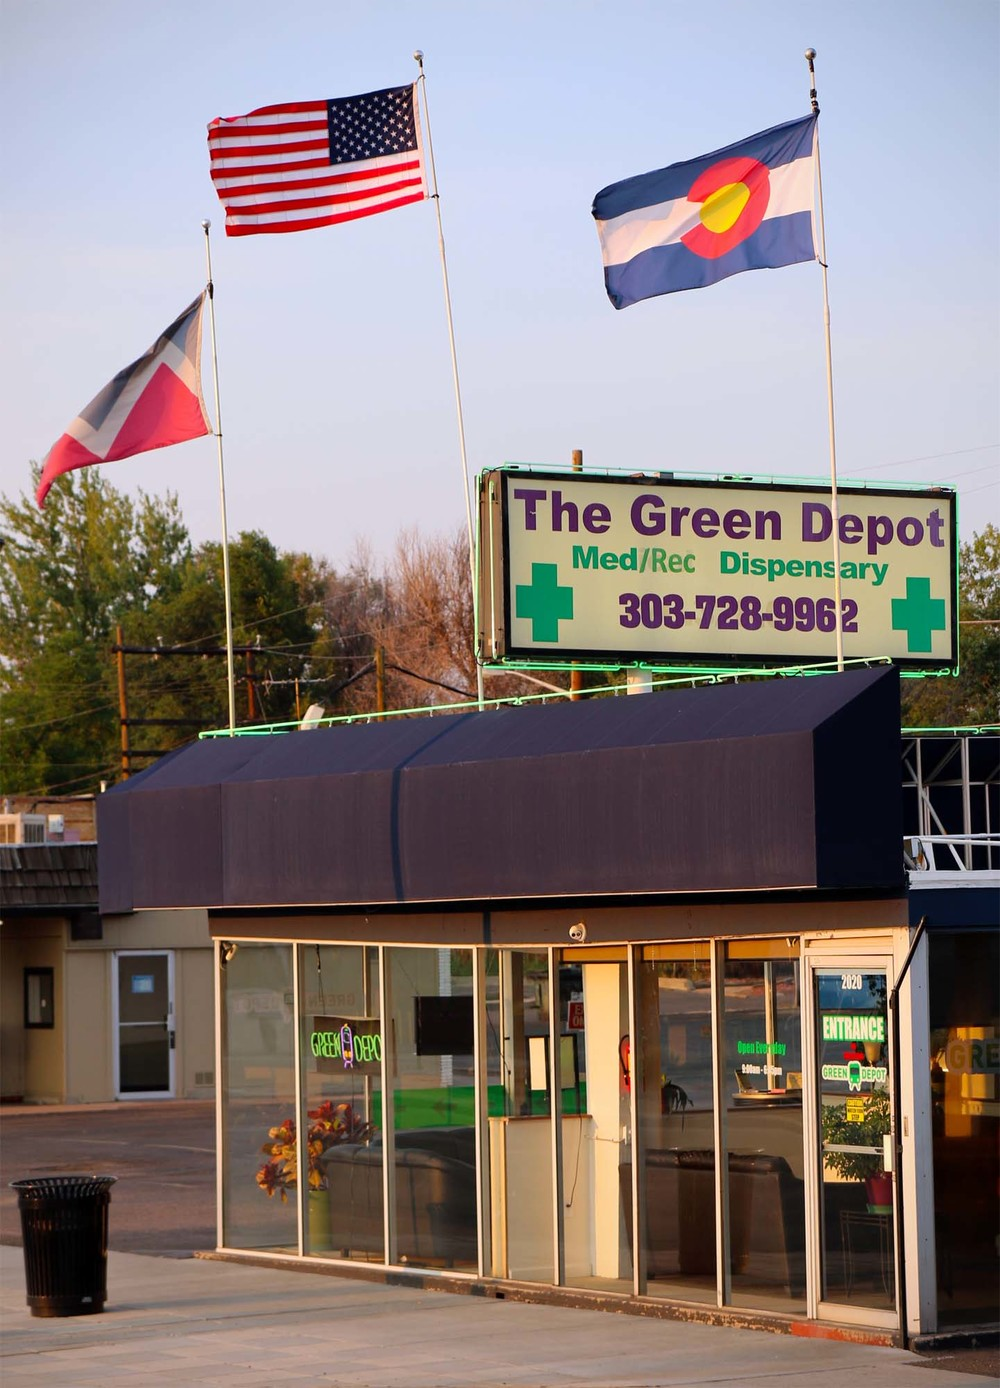 Flags fly over The Green Depot on Broadway St.